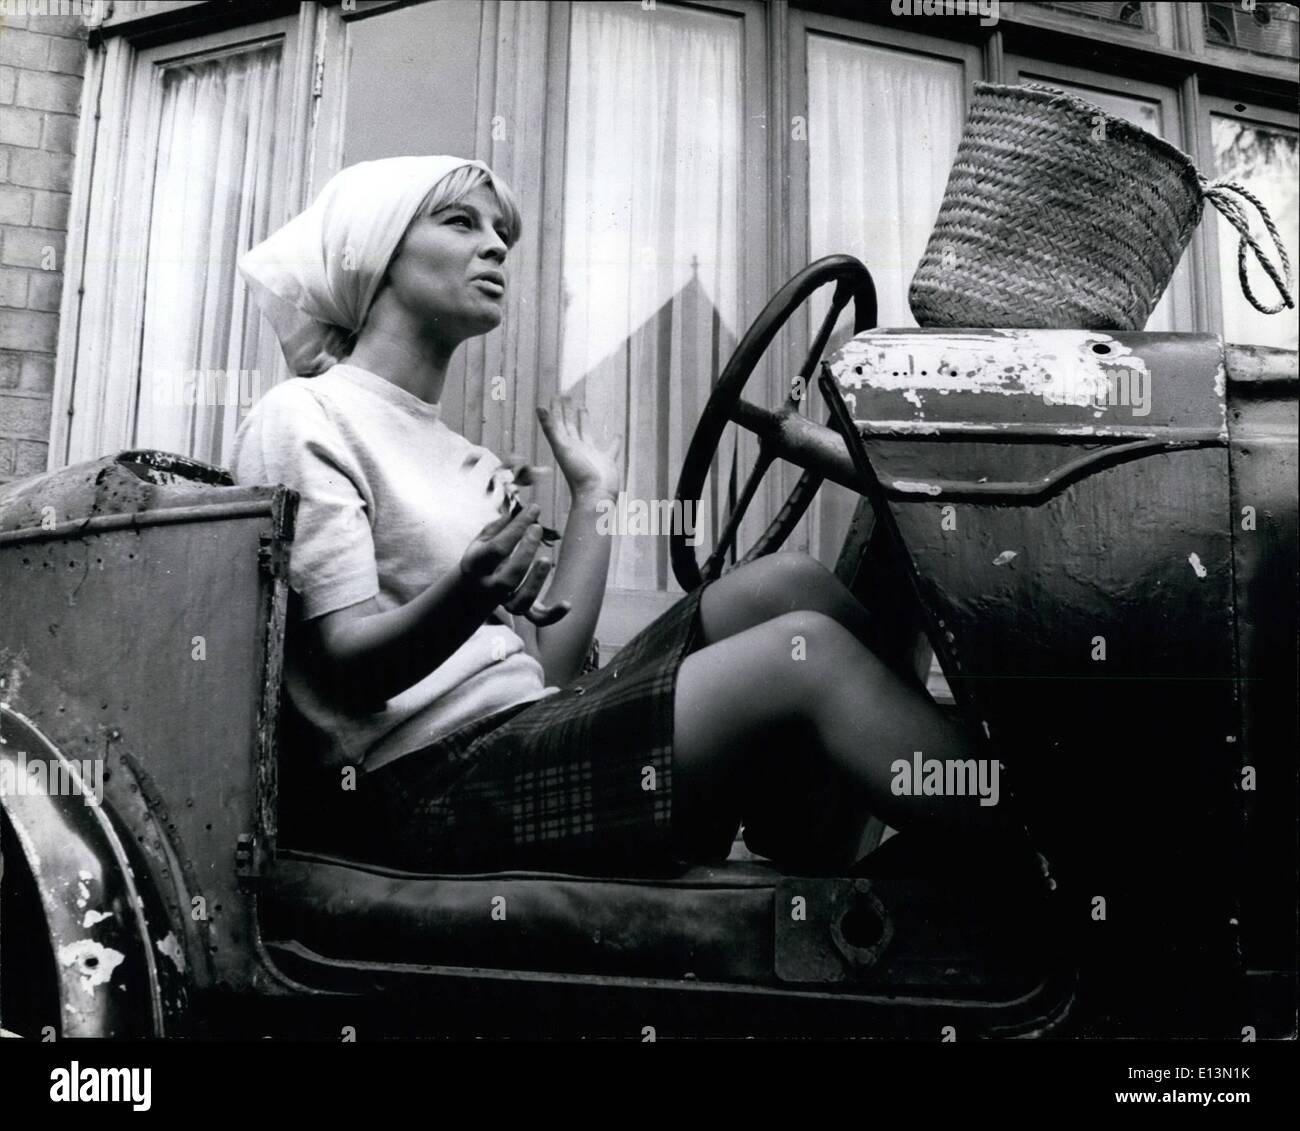 Mar. 02, 2012 - Julie Christie, has no transport of her own... but her landlady's mechanic son Paul Cetti has a Wolseley Hornet, and Julie tries it out for size. - Stock Image